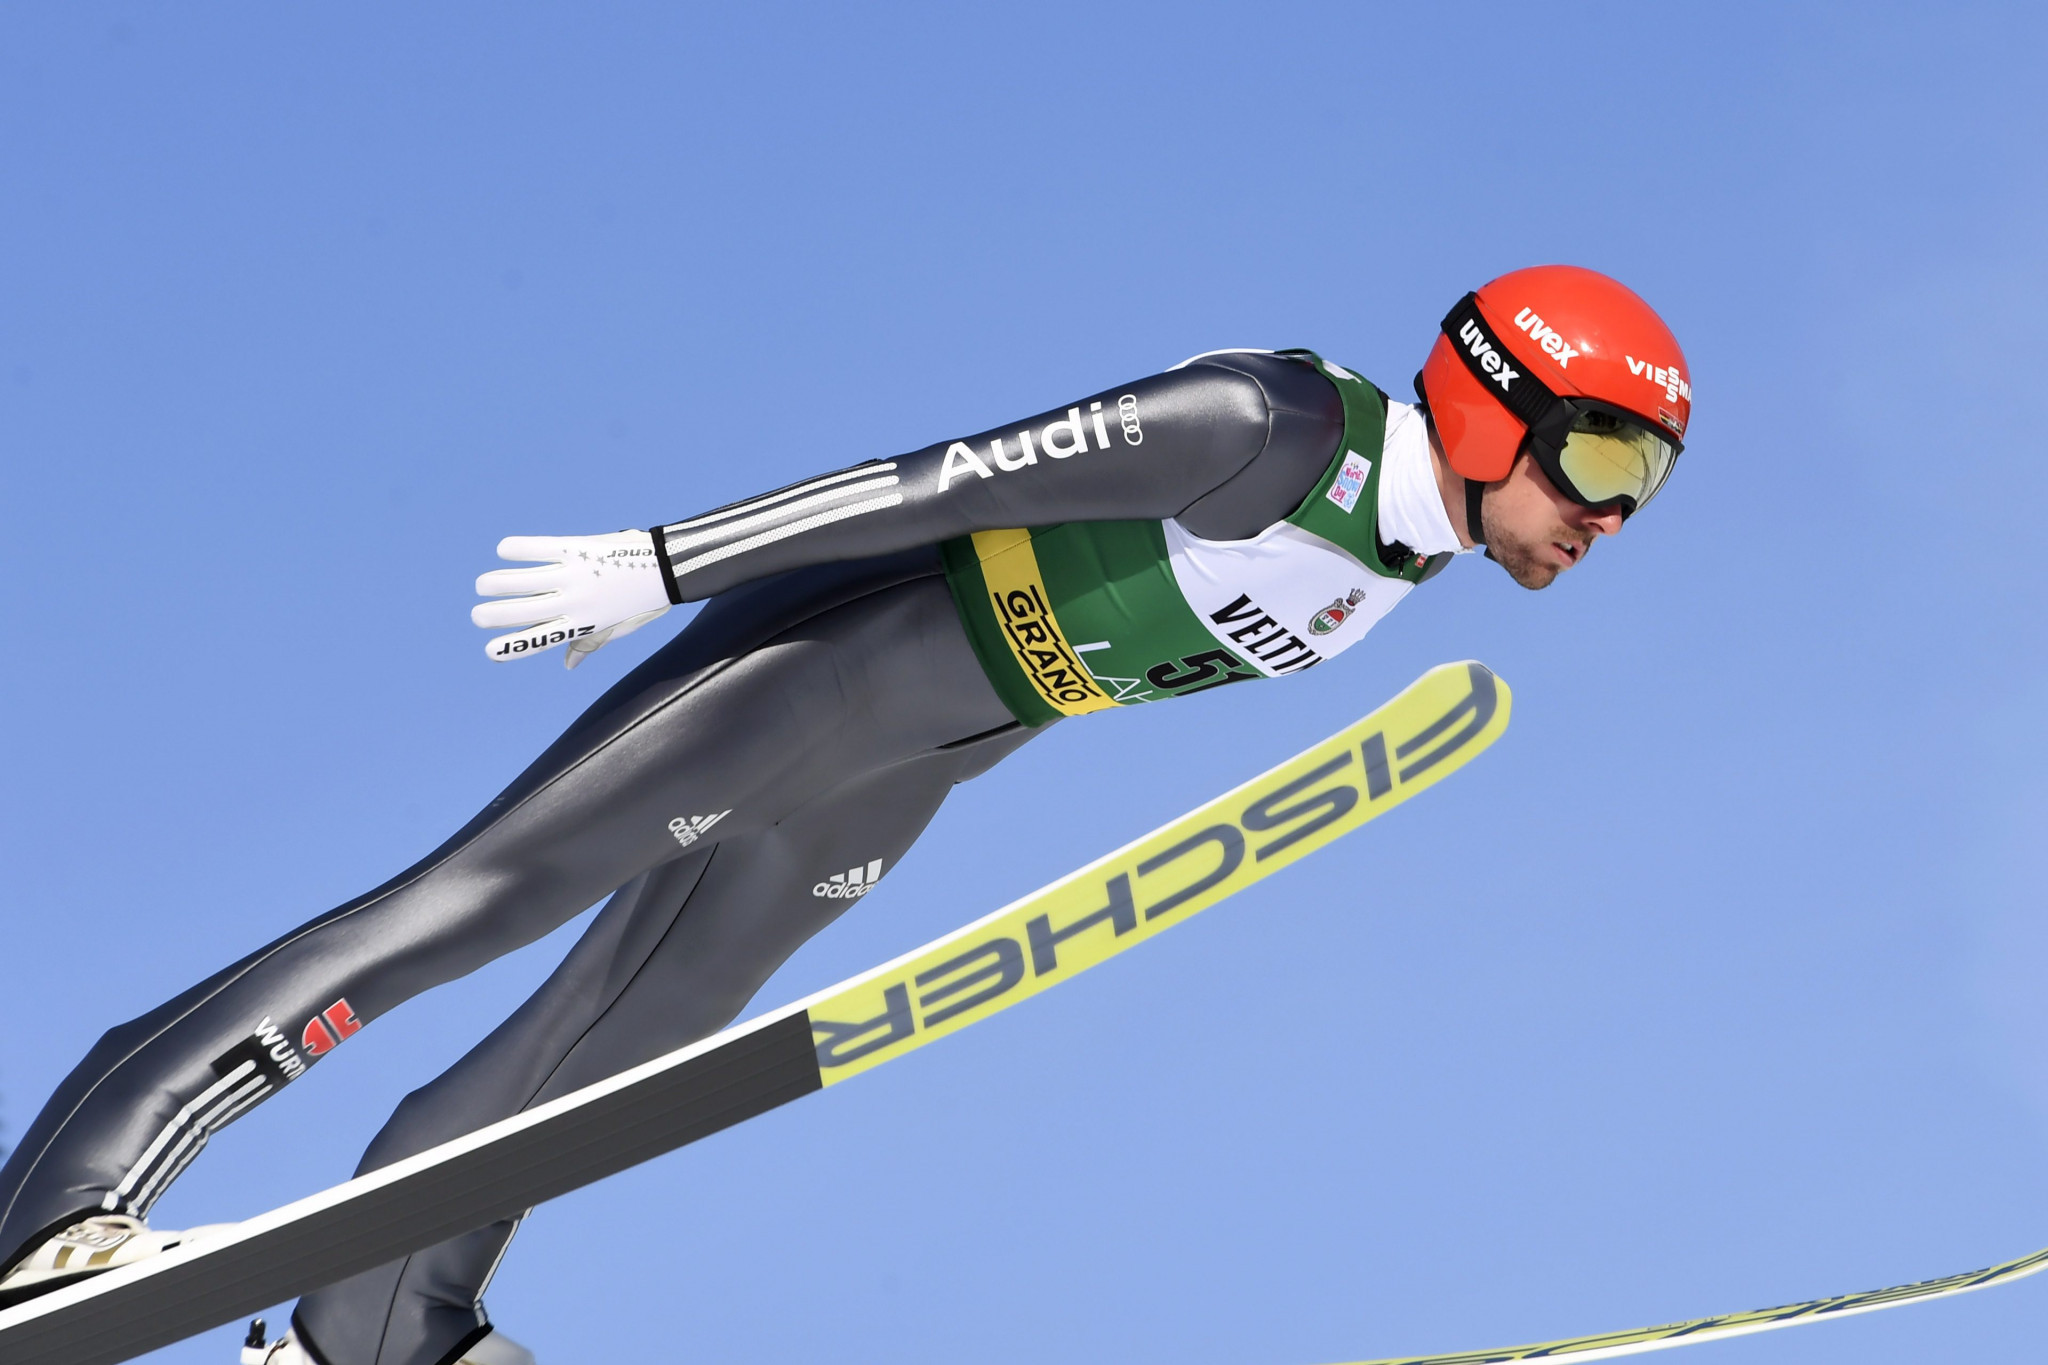 World and Olympic champion Johannes Rydzek is among the participants at the Nordic Combined World Cup ©Getty Images